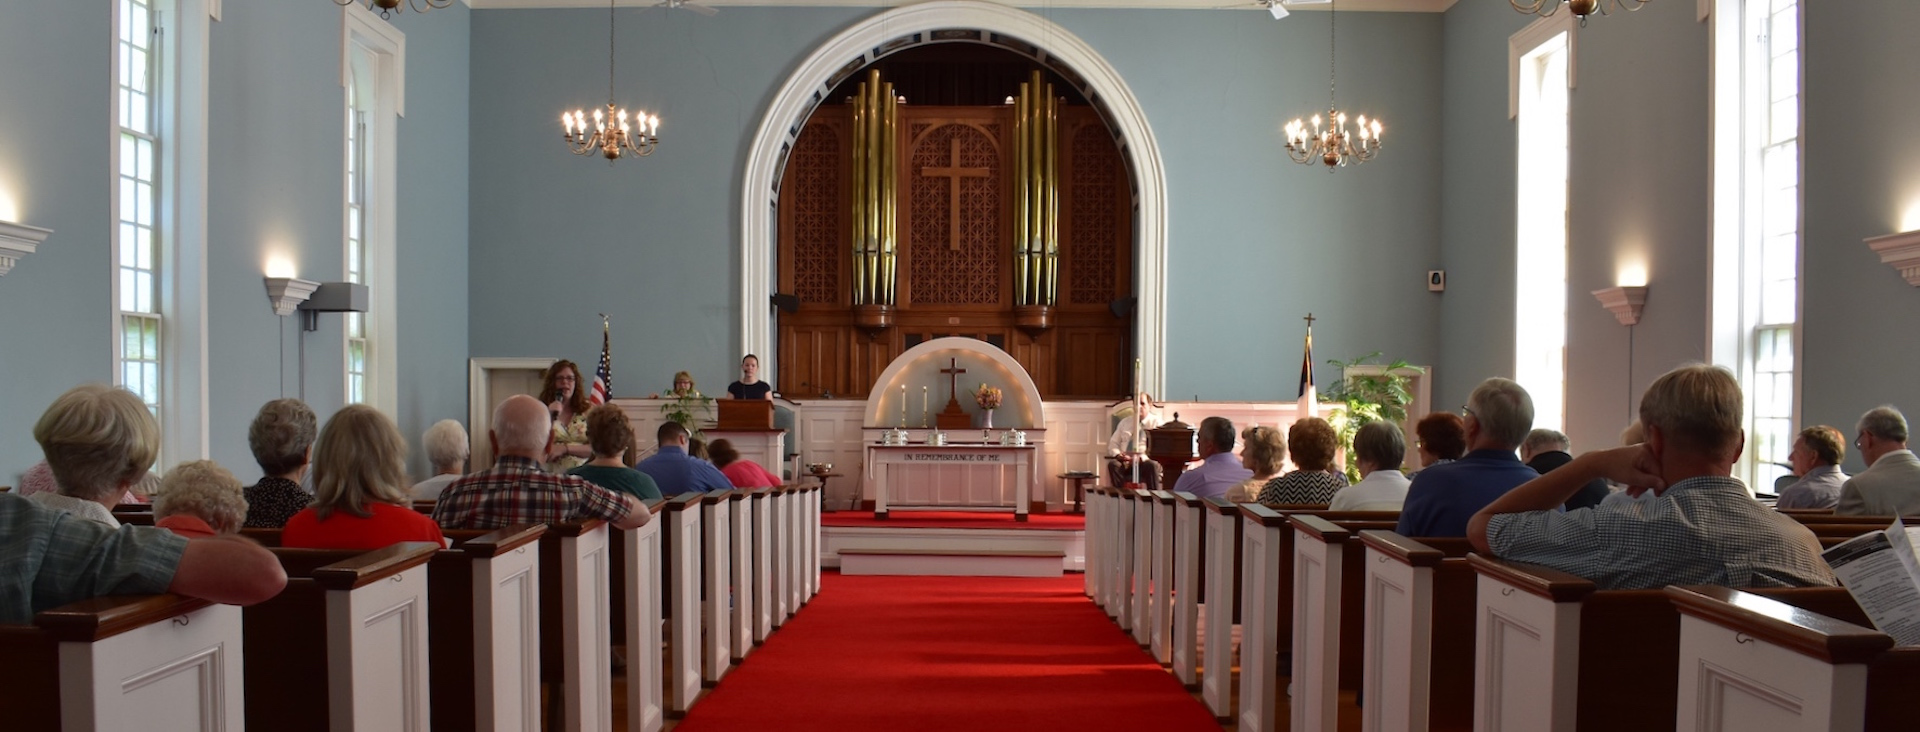 1529349721_First Congregational Church - Interior Banner 1 Final.jpg